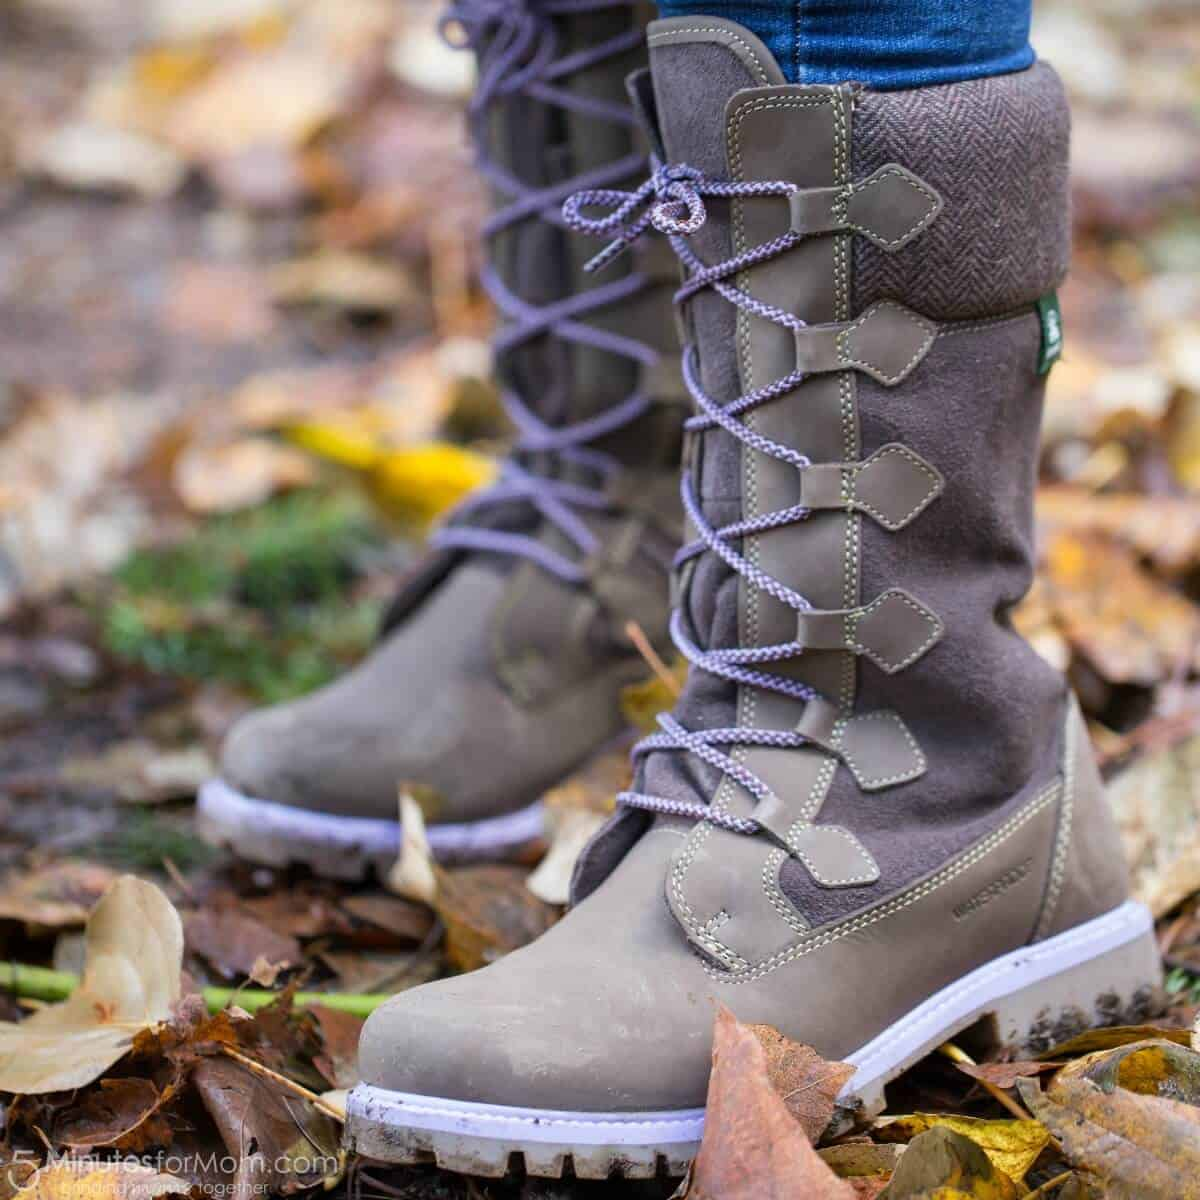 Kamik TAKODA boots for girls